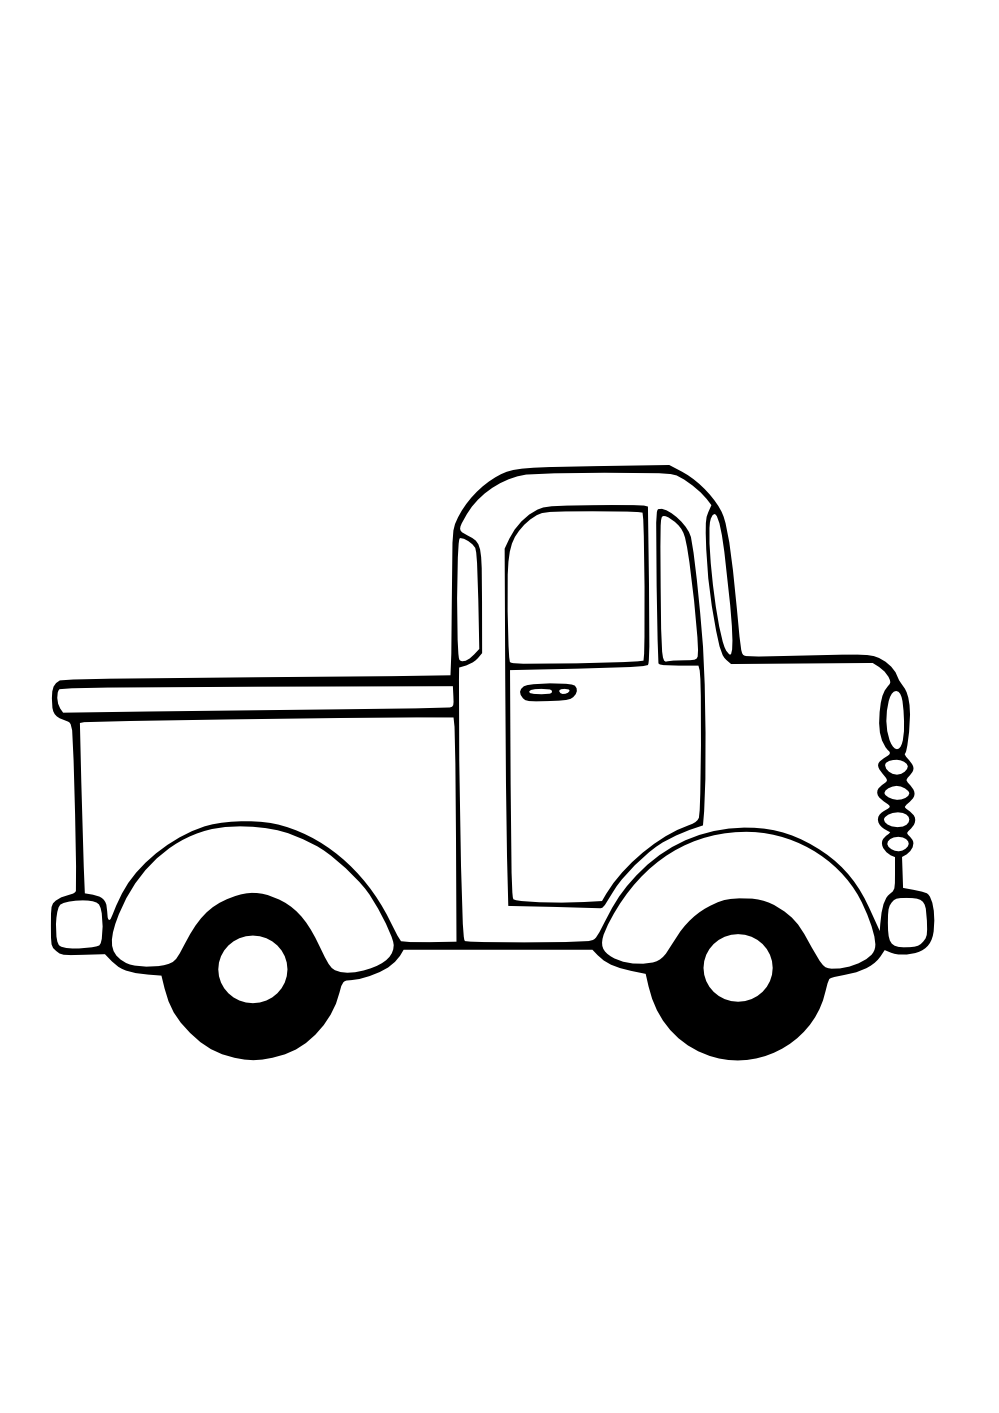 Toy truck clipart black and white clip freeuse stock Truck Clipart Black And White | Clipart Panda - Free Clipart ... clip freeuse stock